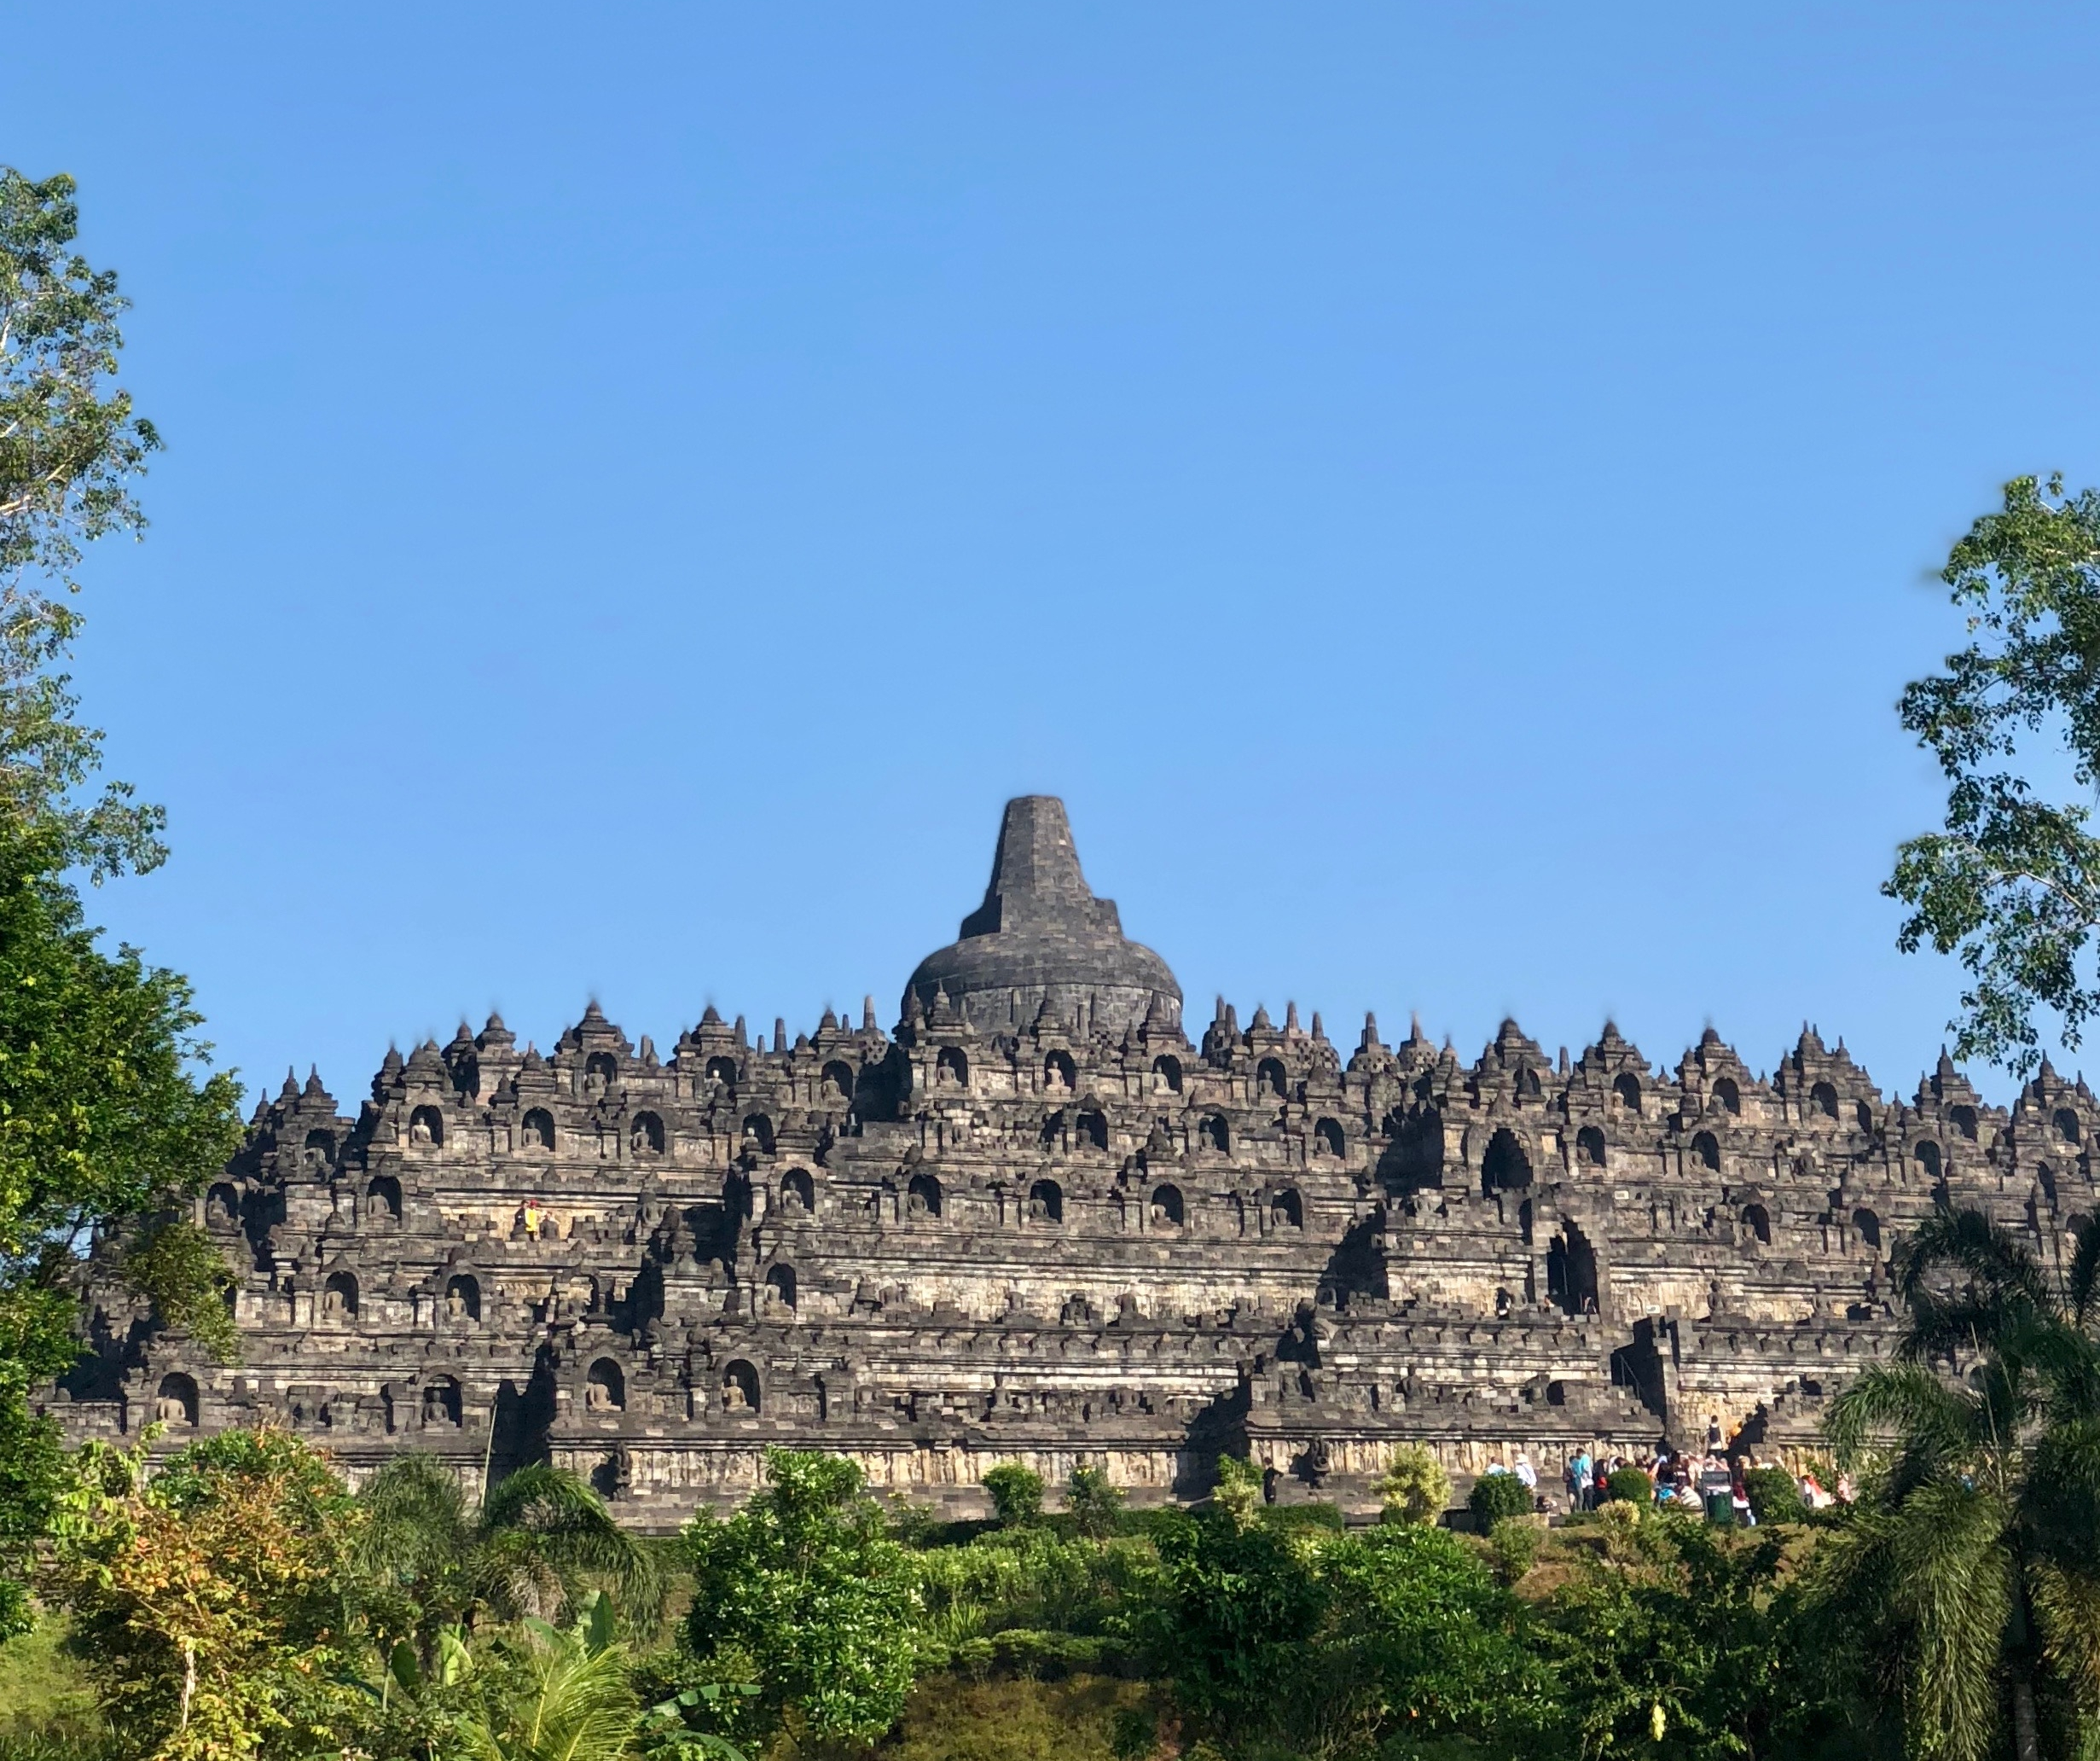 Seeing Borobudur from a distance doesn't do justice to its grandeur. It's an entirely different temple up close